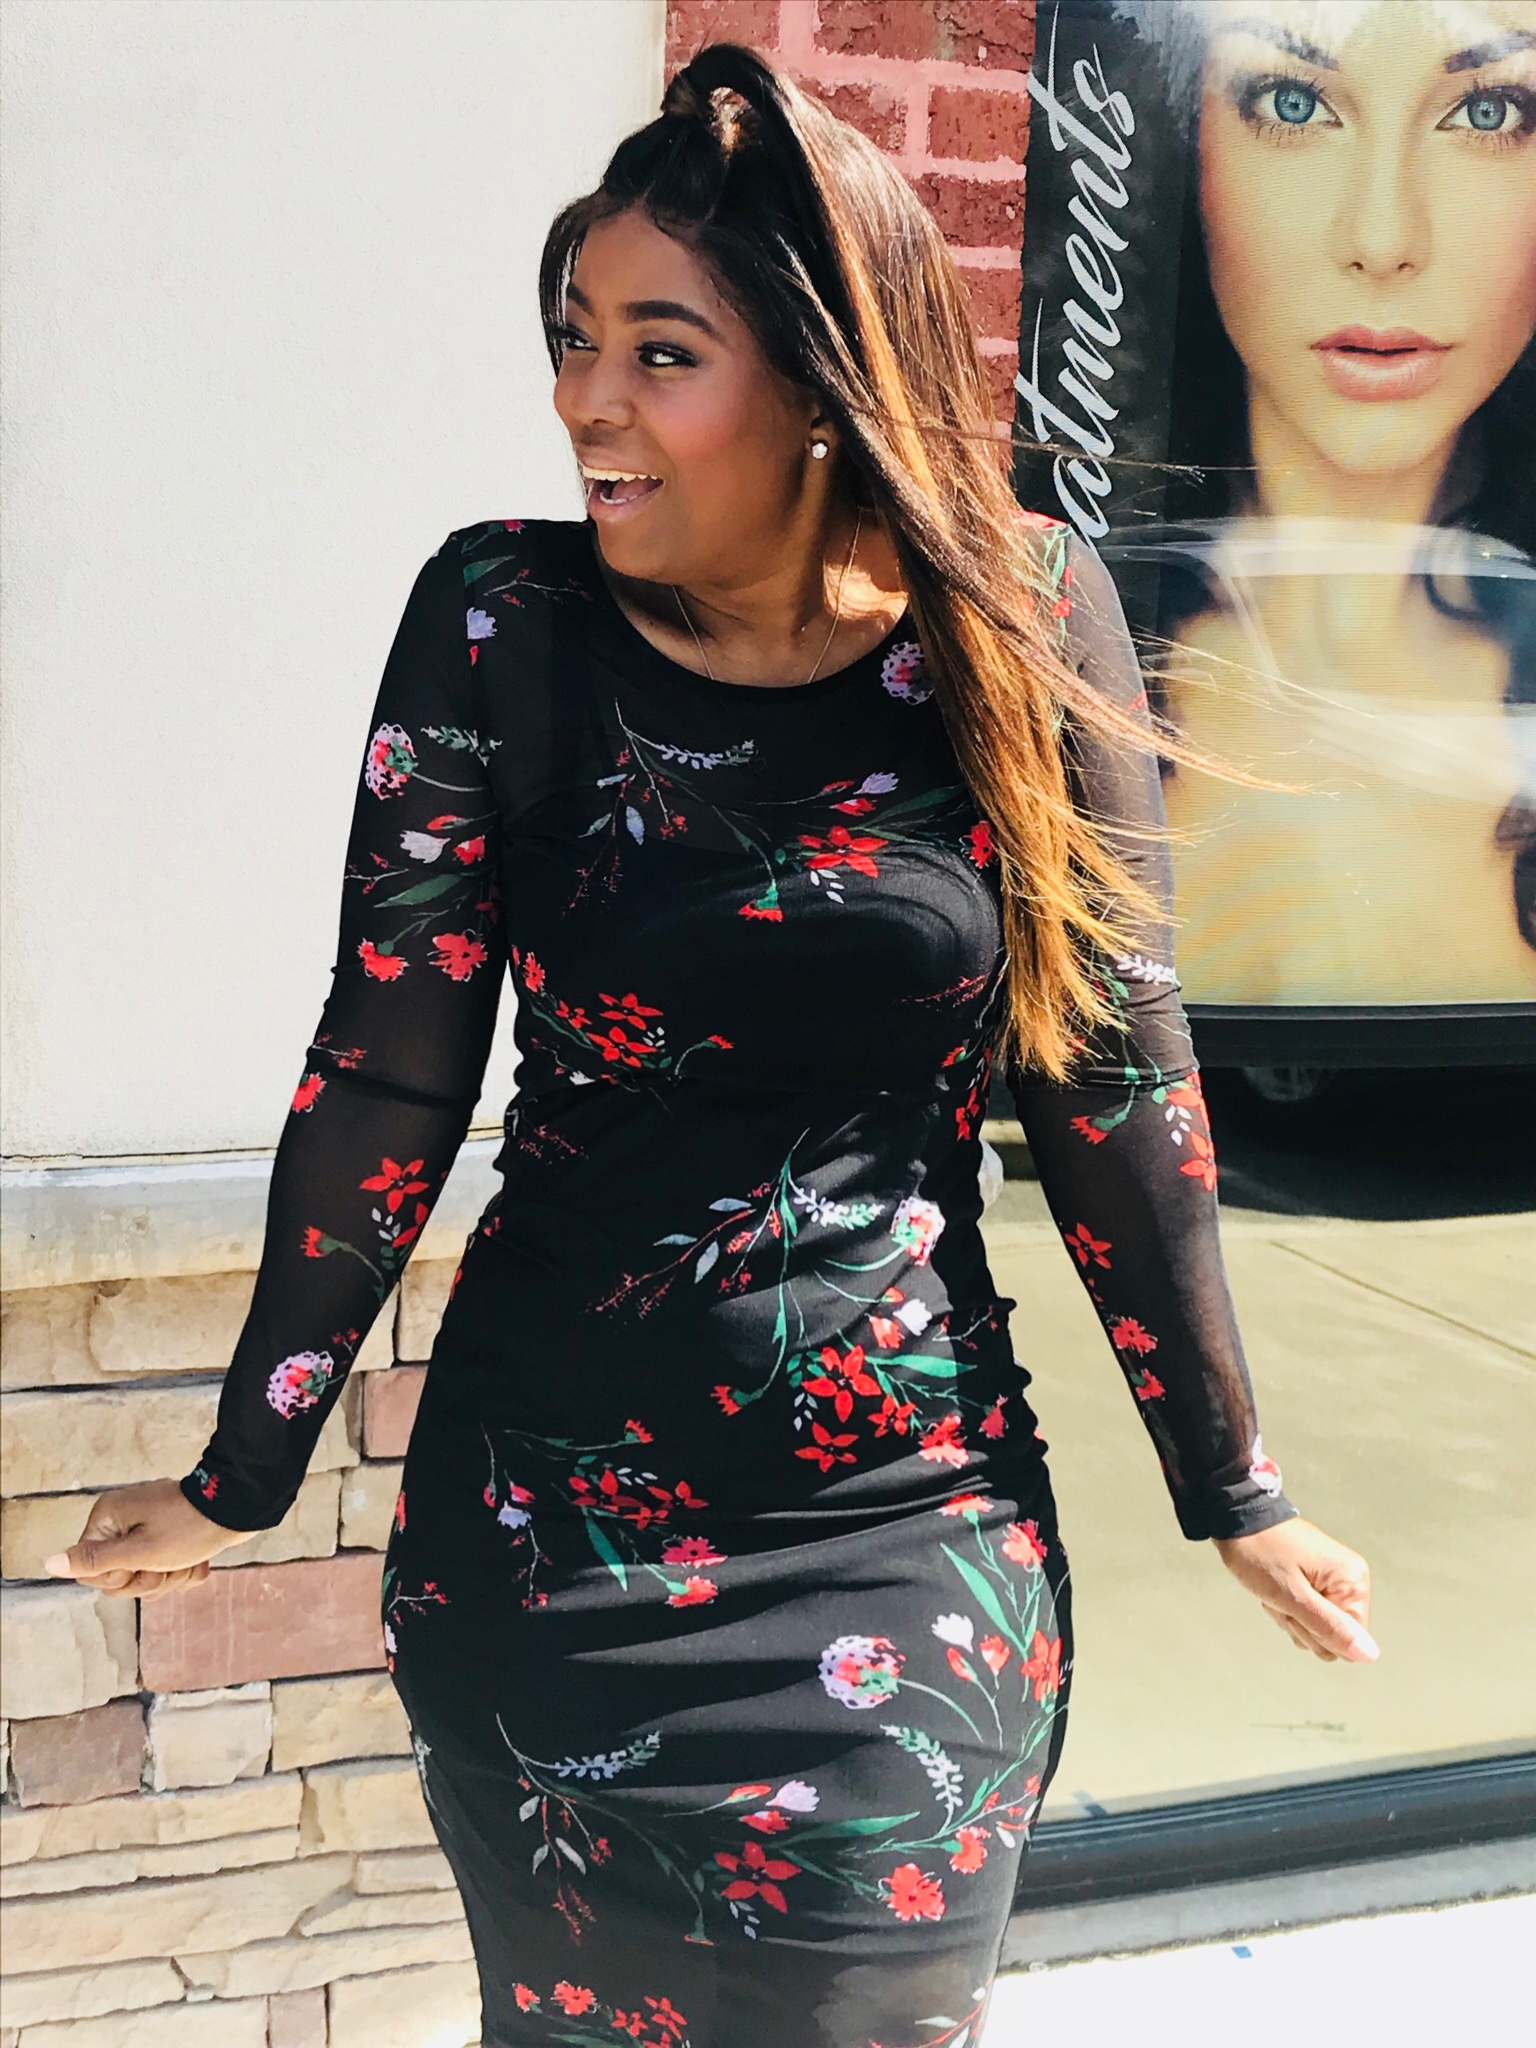 My Style: Mesh Bodycon Floral Print Dress